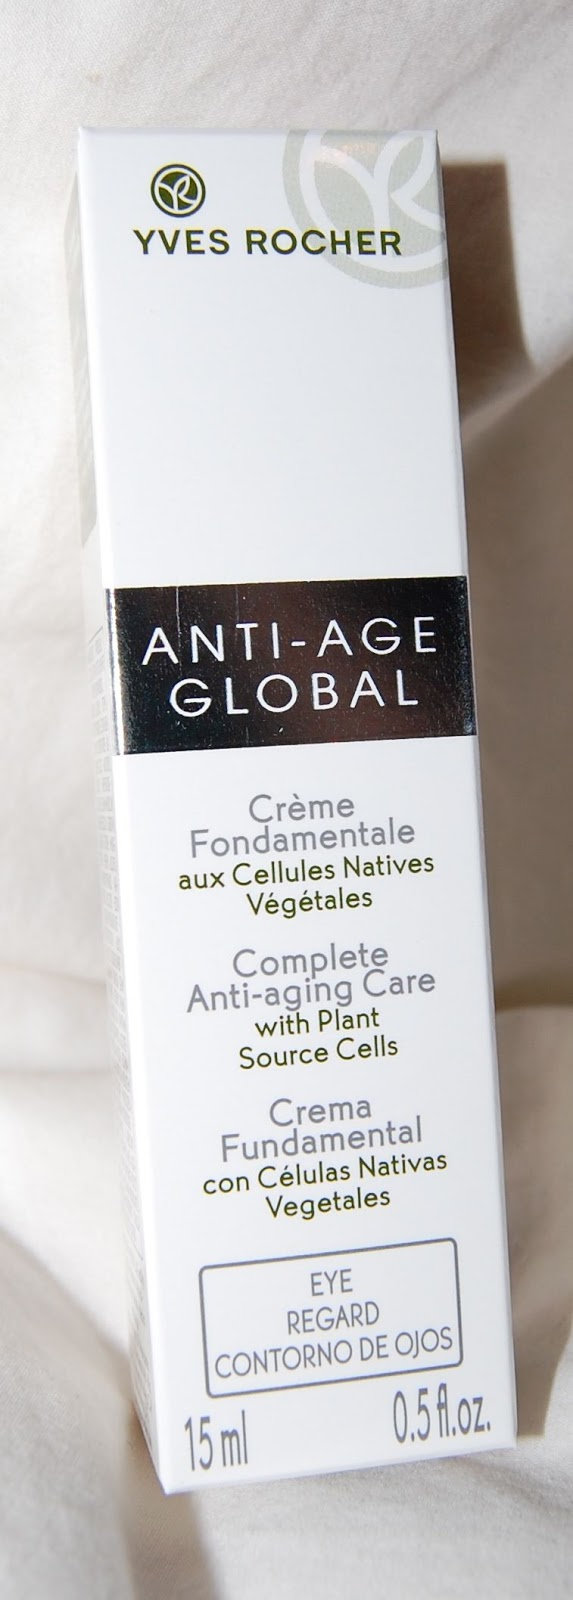 Beauty Squared Yves Rocher Anti Age Global Review And Photos